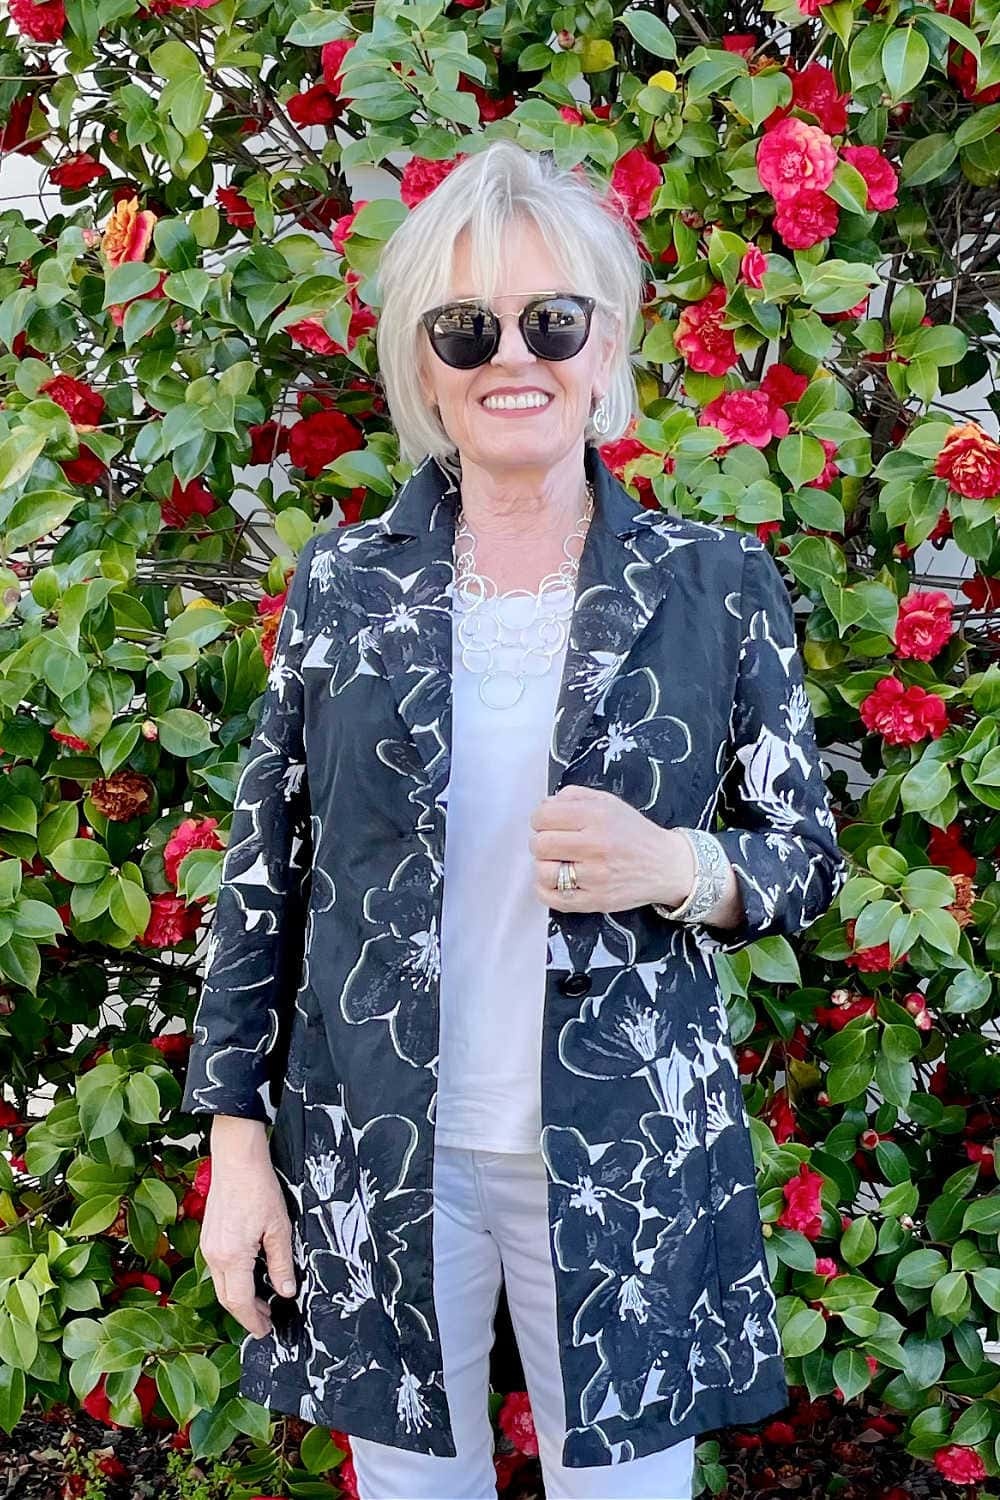 blonde woman wearing white and black floral jacket with white top